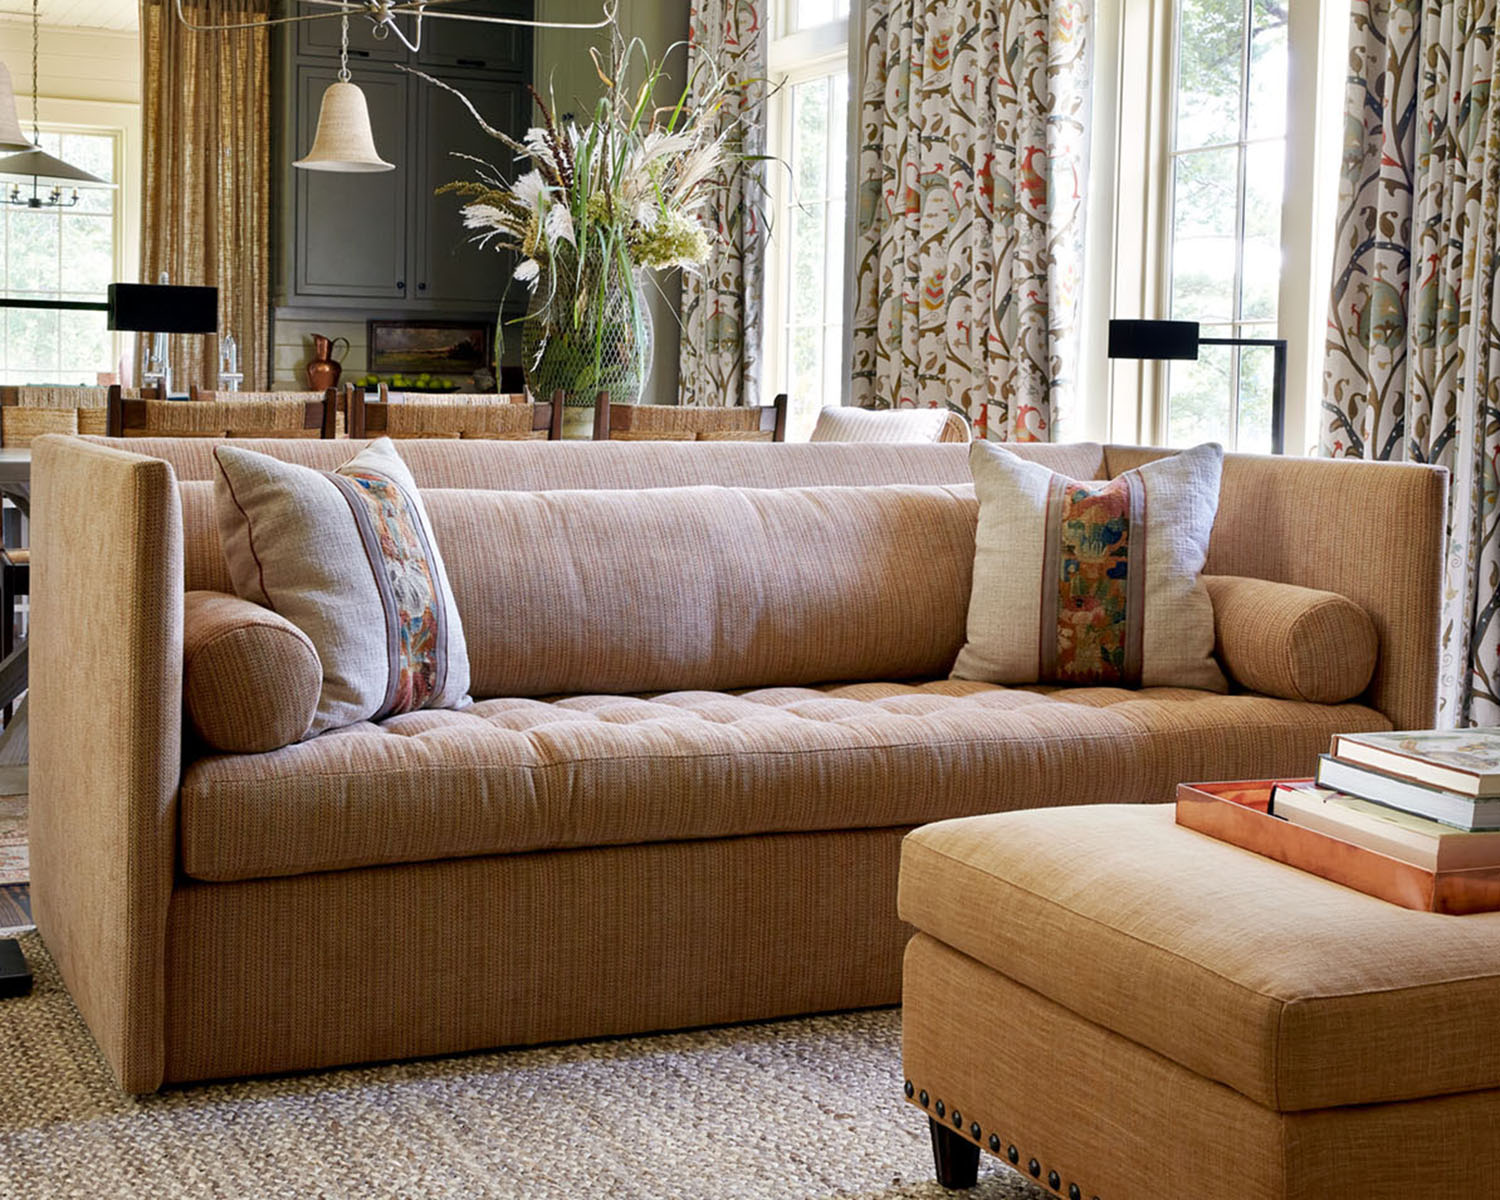 sofa, with view of the dining areas and kitchen beyond, Flower magazine showhouse at Brierfield